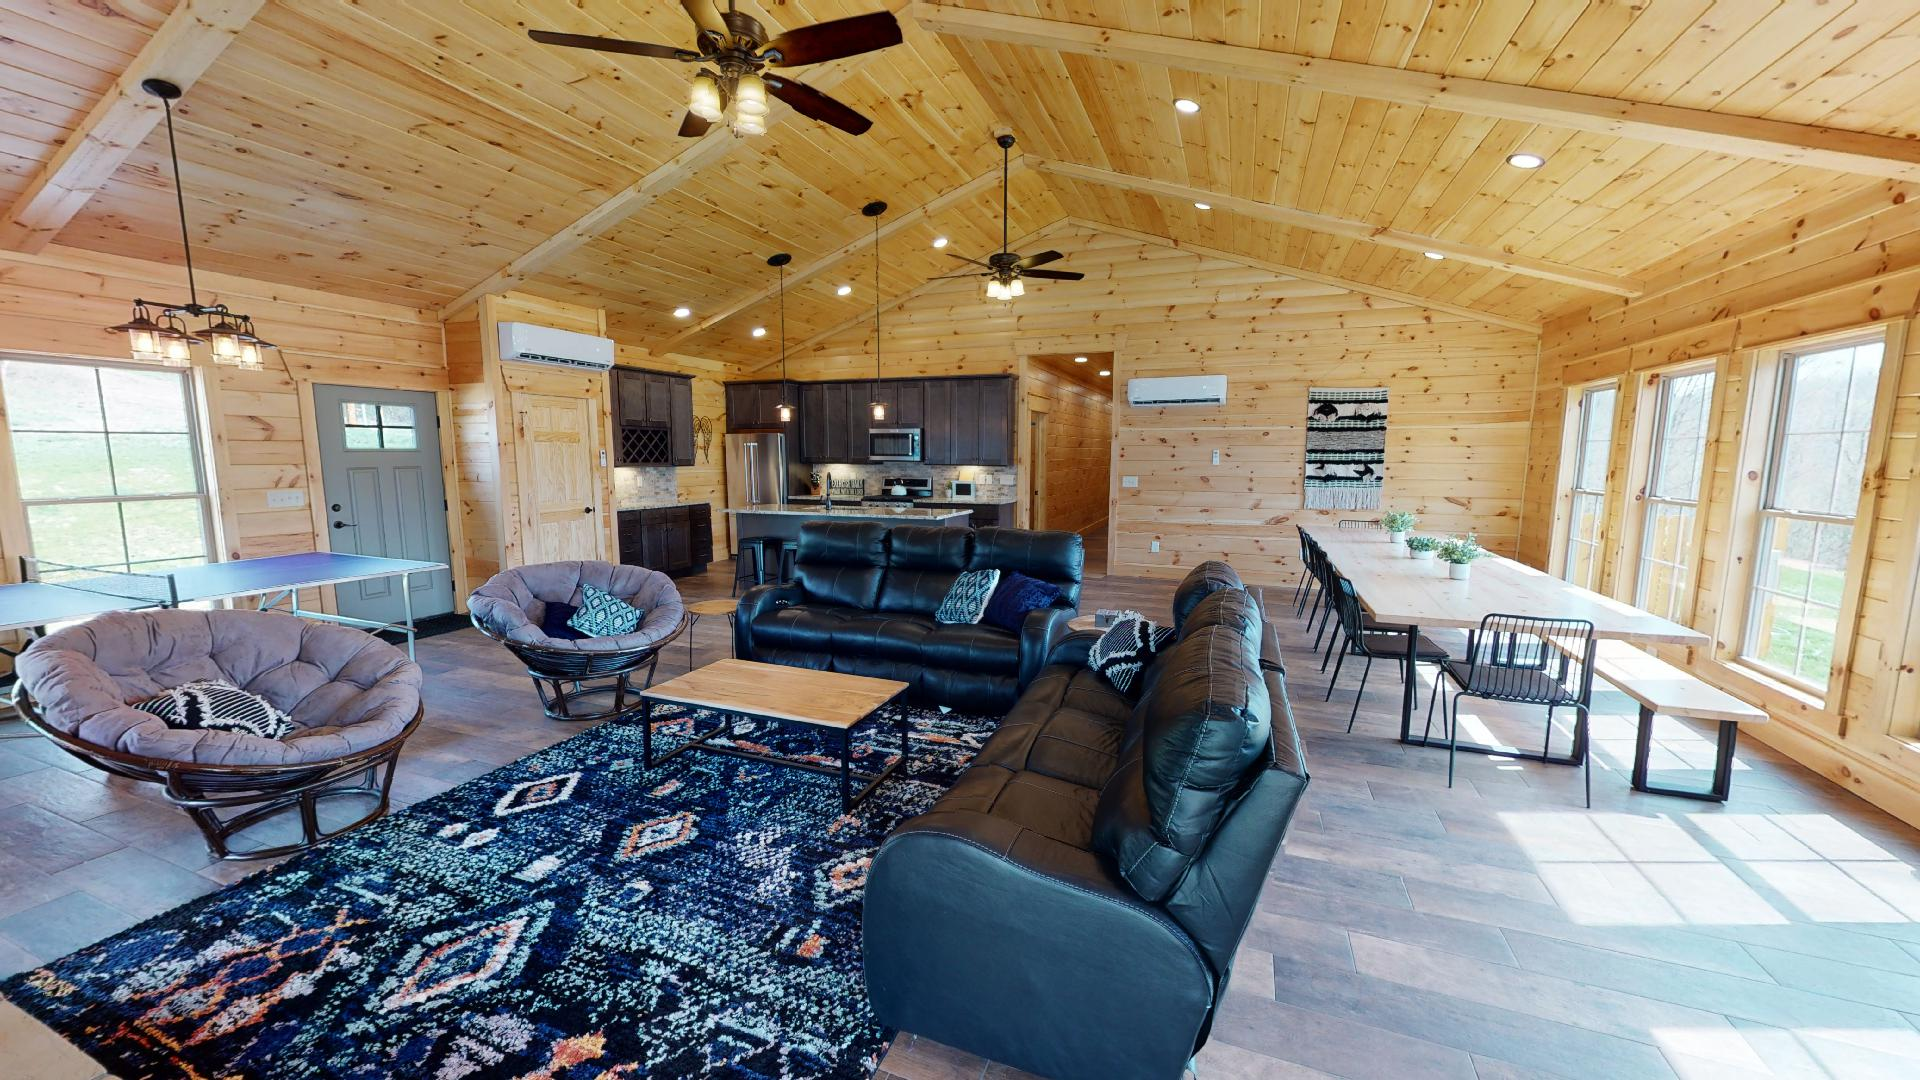 Revive Ridge - View from sliding glass doors into lodge.